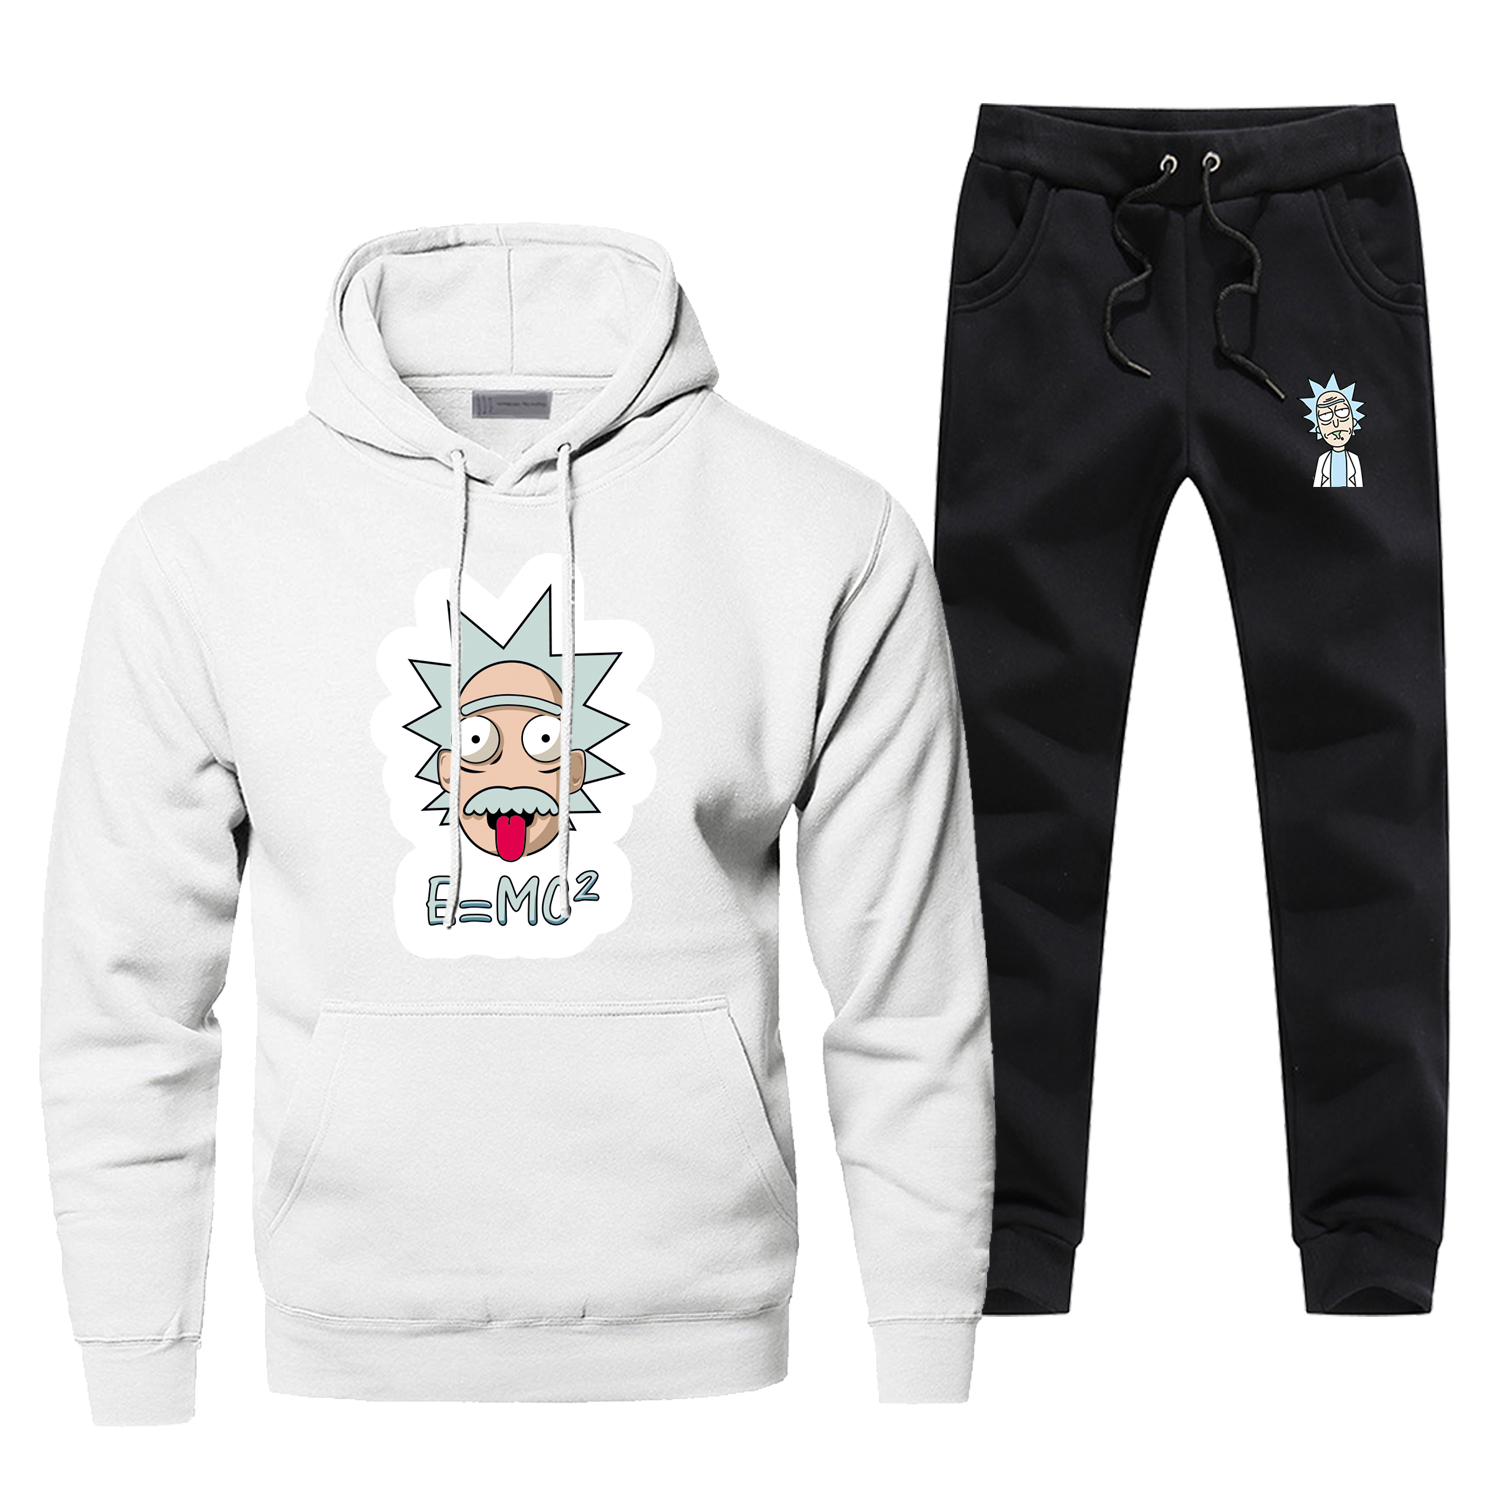 Rick And Morty Einstein Funny Print Men's Full Suit Tracksuit 2019 New Arrival Warm Hoodies Casual Fleece Sweatpants Streetwear